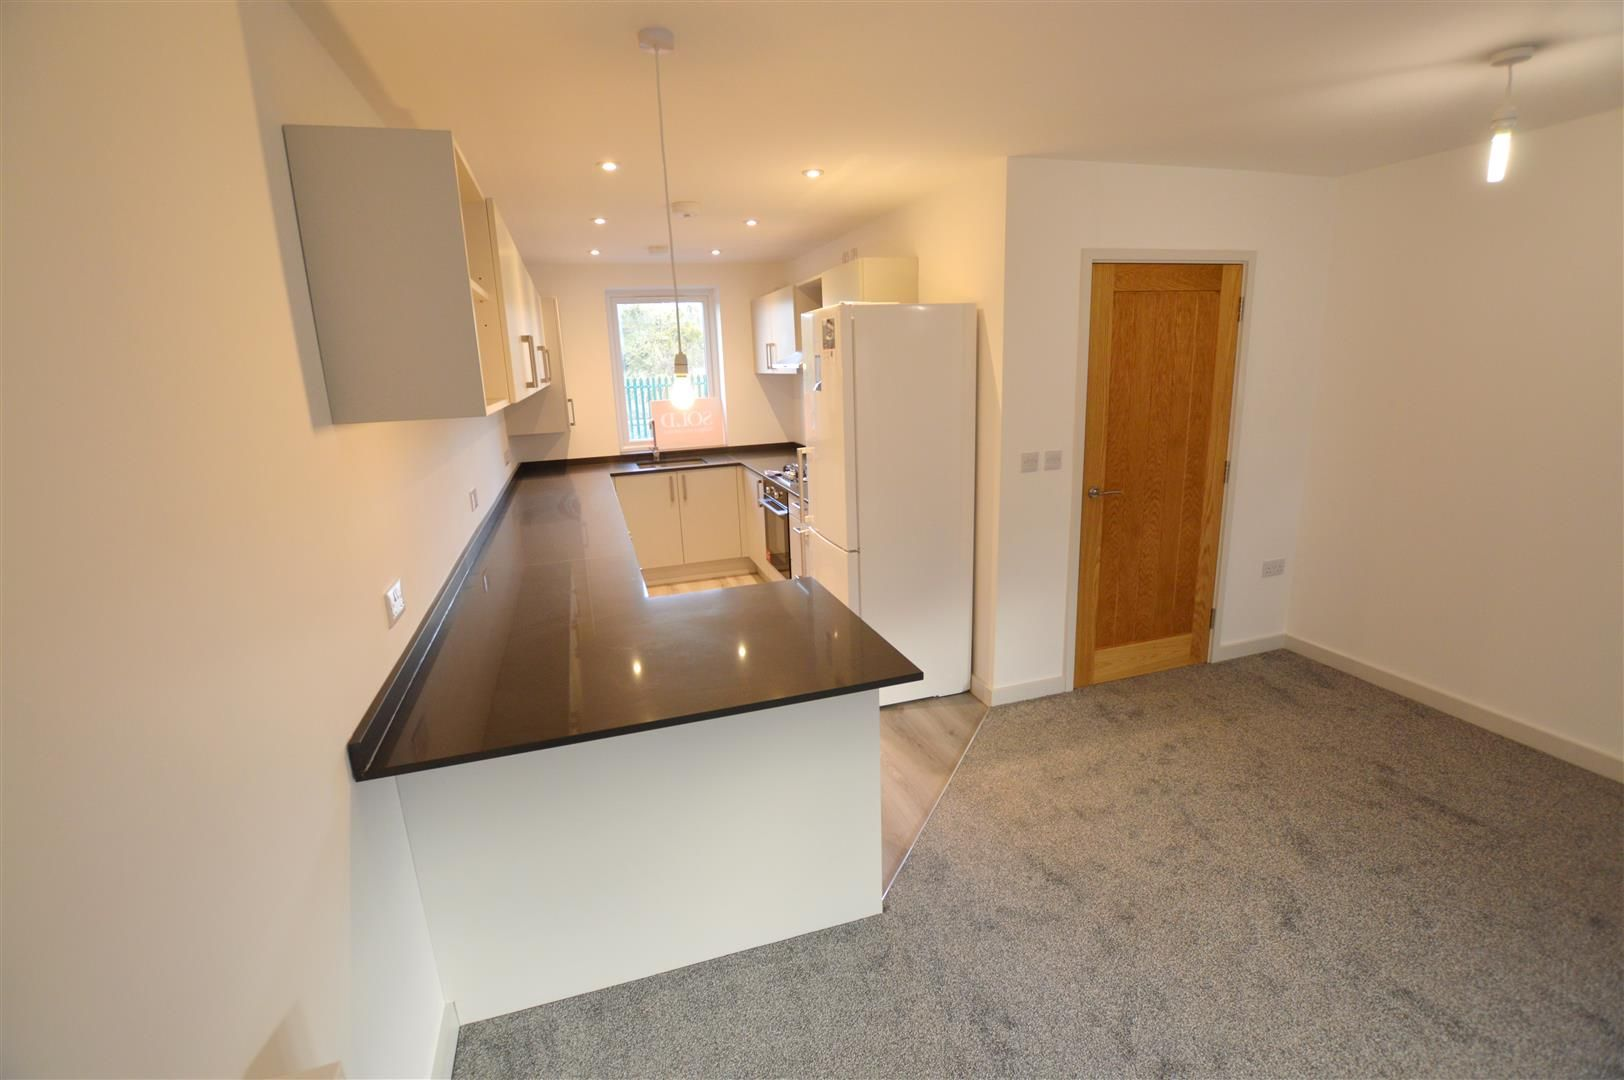 3 bed end of terrace for sale in Leominster  - Property Image 6